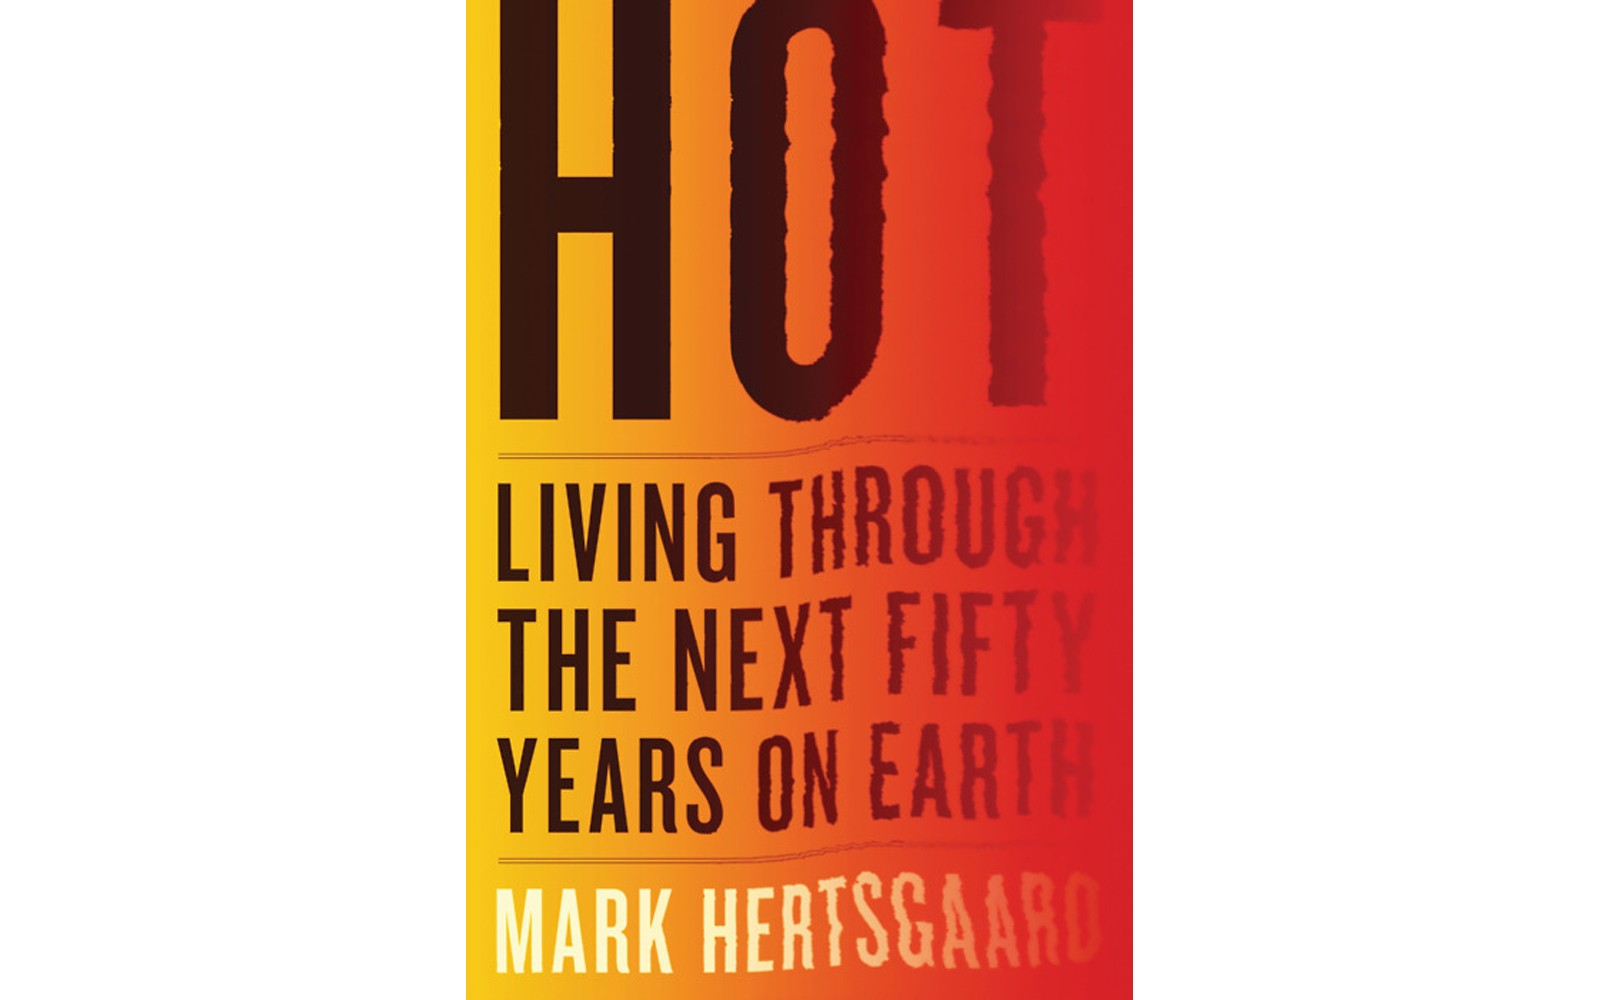 HOT: Living Through the Next Fifty Years On Earth - BY MARK HERTSGAARD - HOUGHTON MIFFLIN HARCOURT